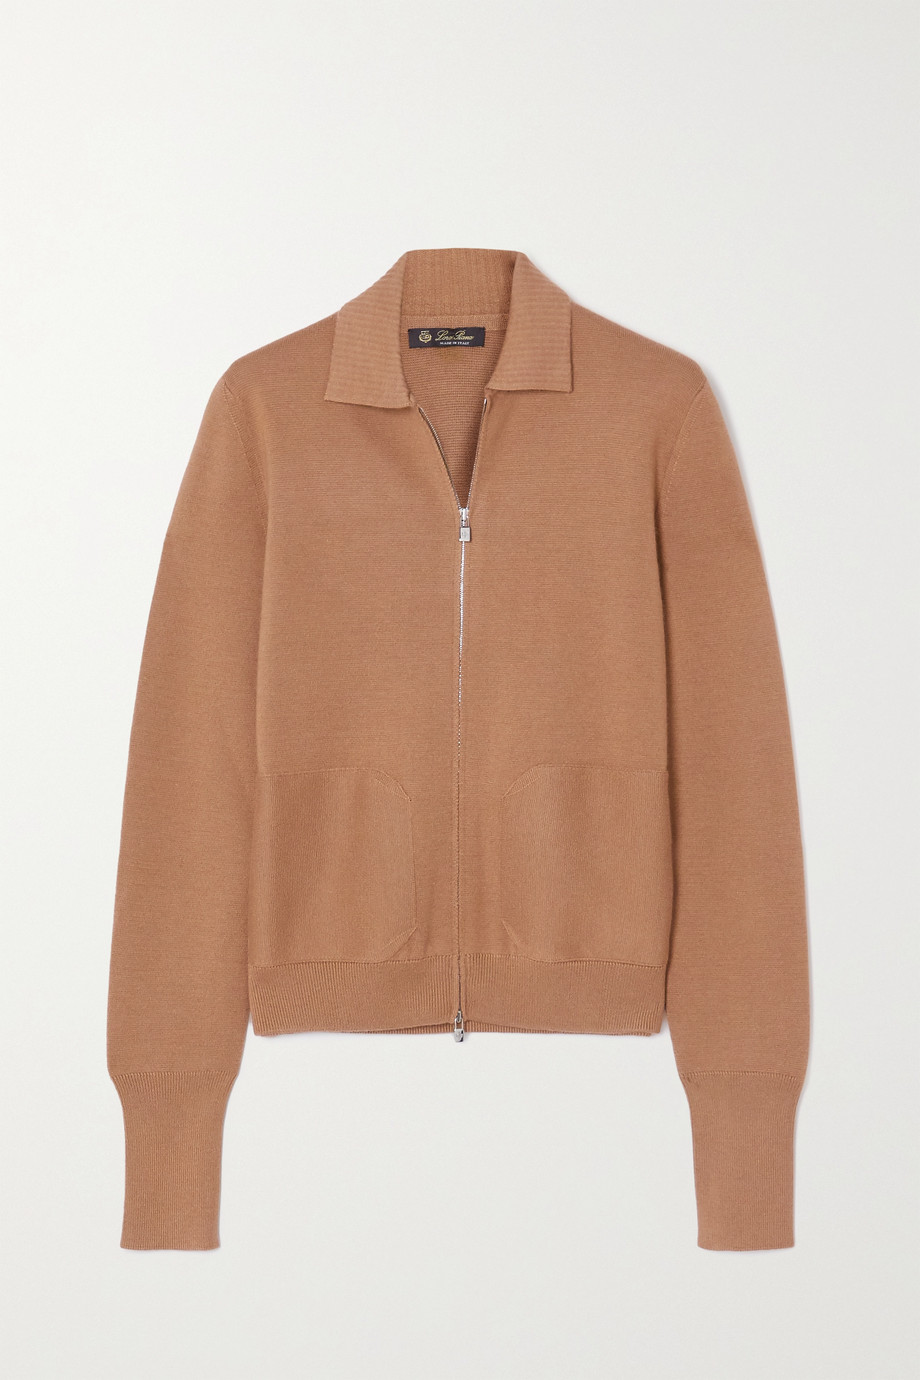 Loro Piana Cashmere and silk-blend jacket